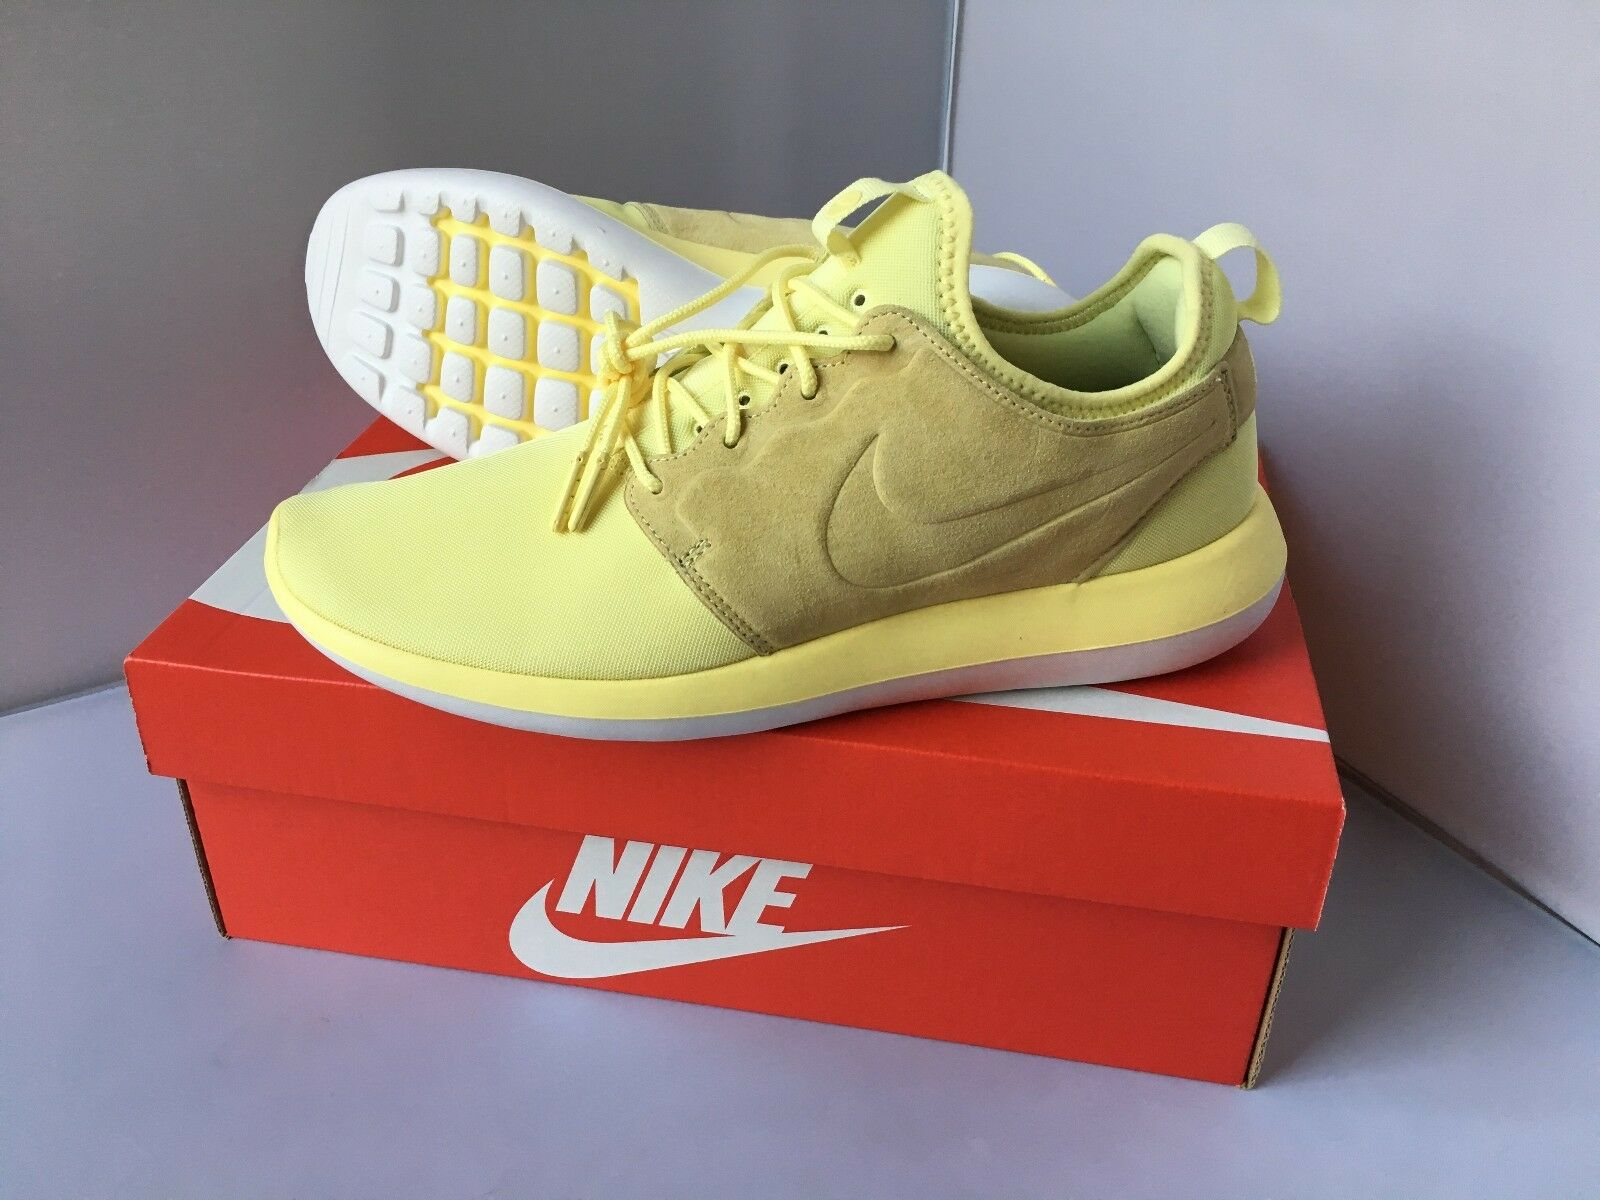 Nike Roshe Two Br Yellow Suede 9.0 Men